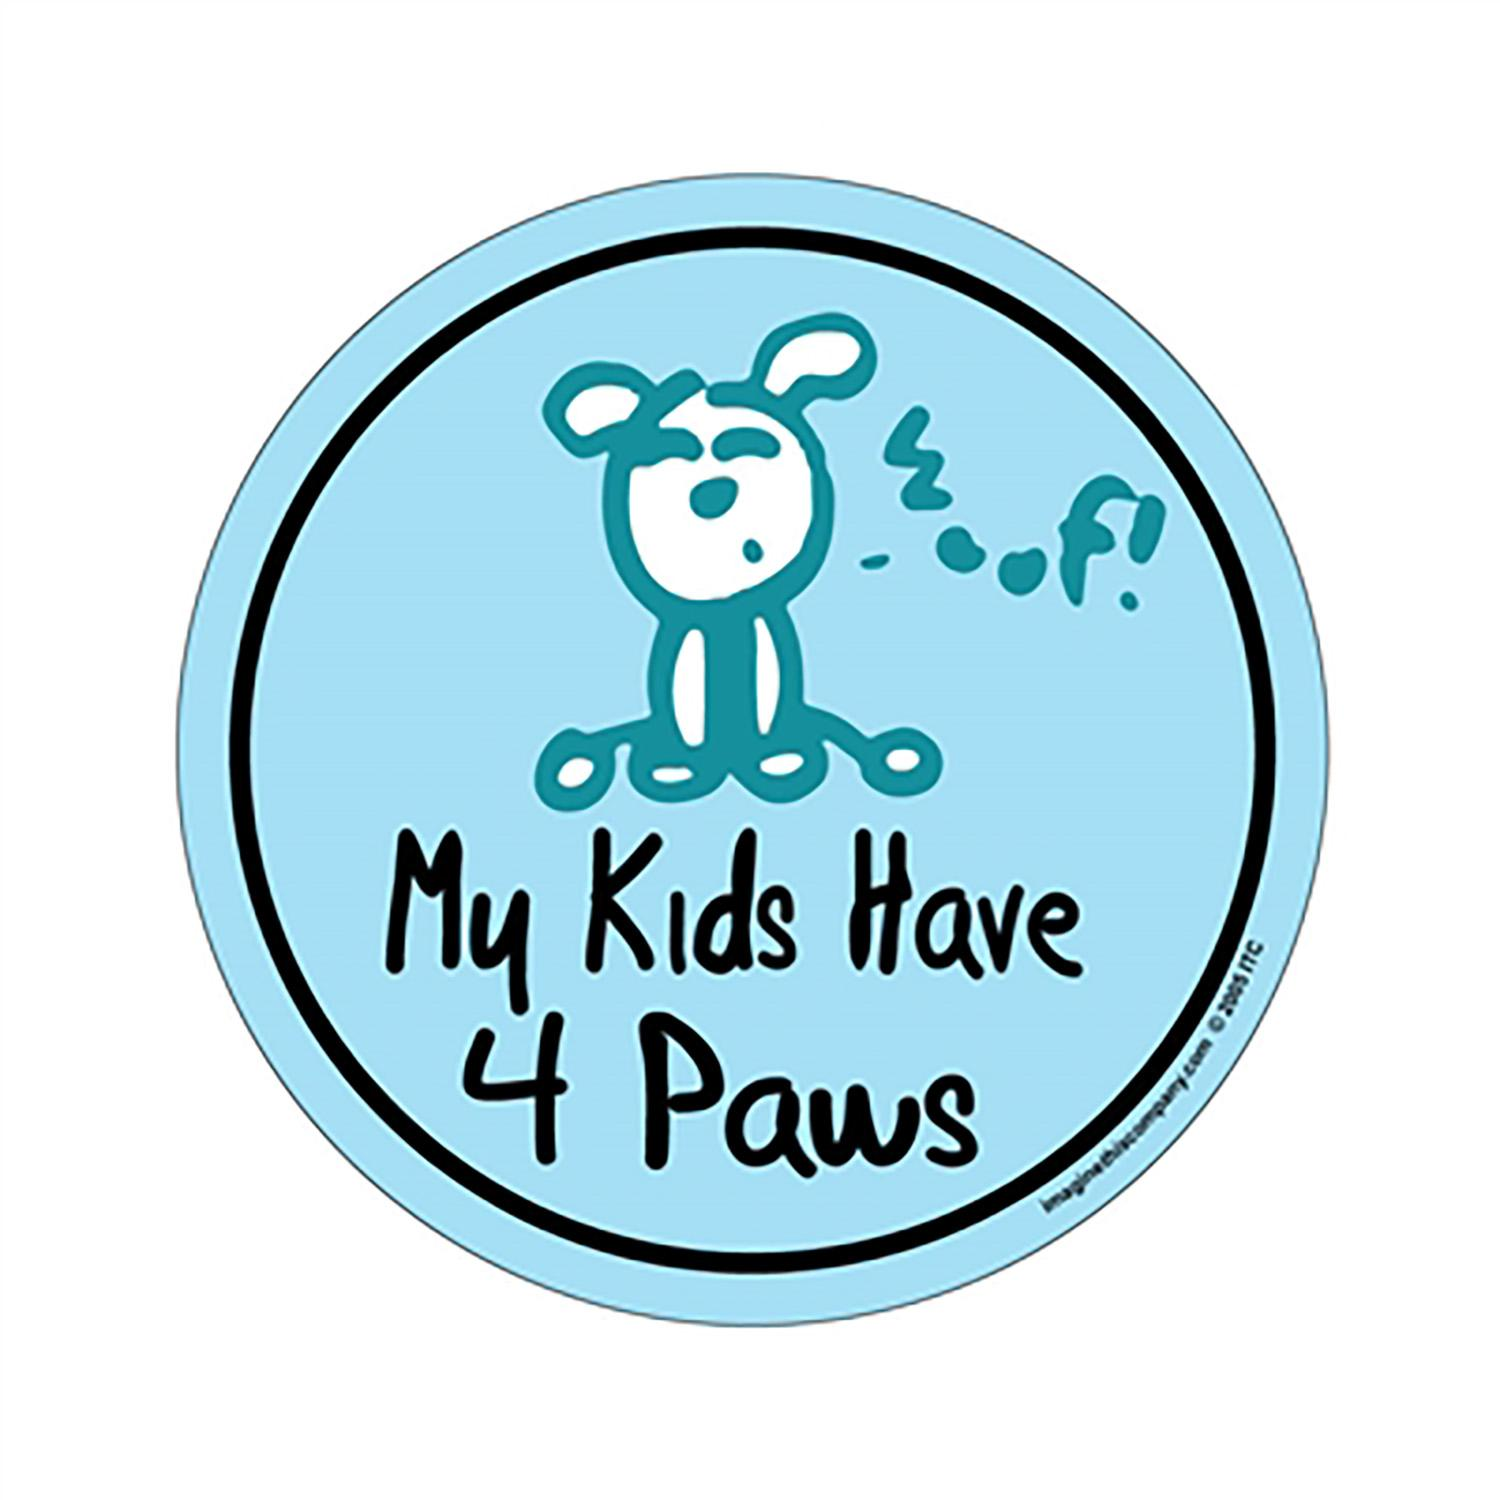 My Kids Have 4 Paws Circle Magnet